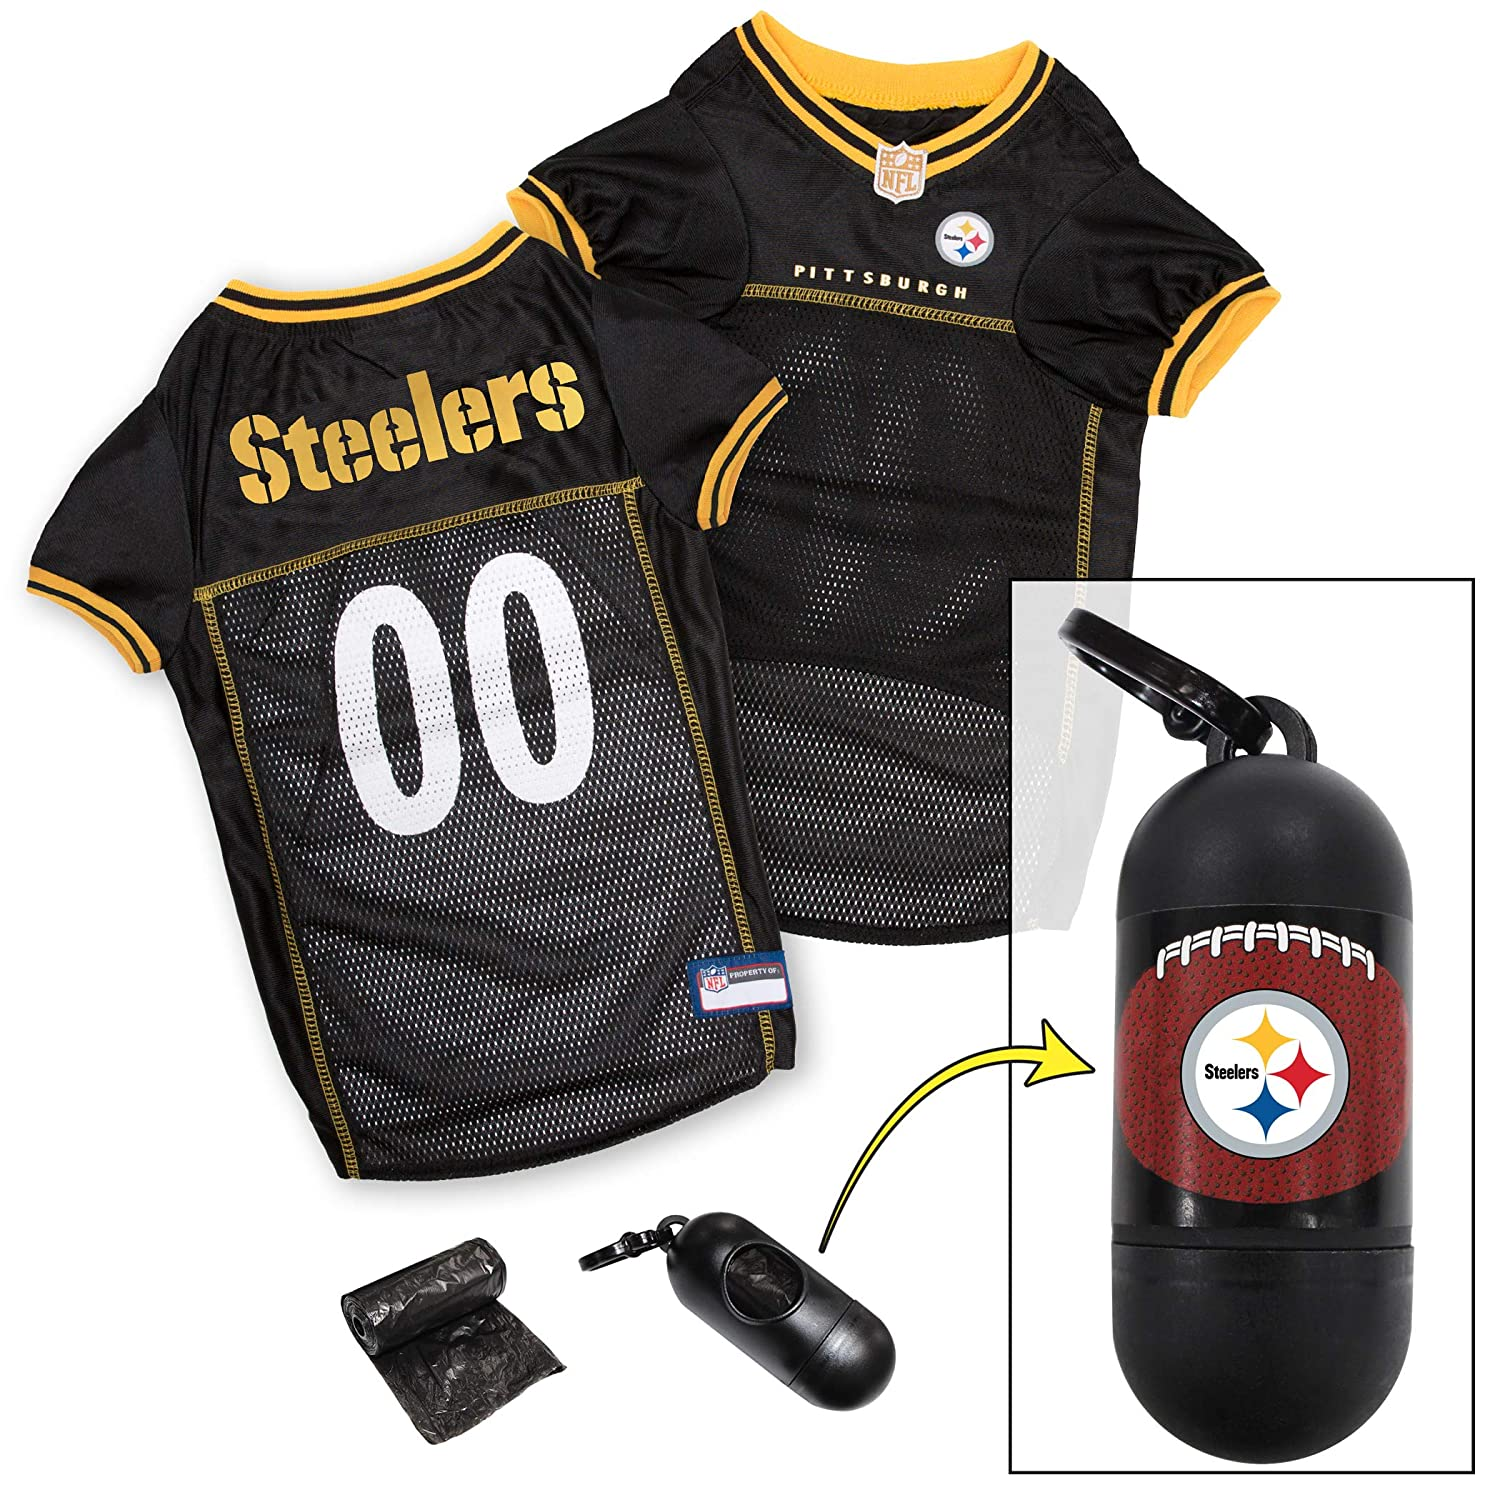 huge selection of e0b4e 21107 NFL PET Jersey. Most Comfortable Football Licensed Dog Jersey. 32 NFL Teams  Available in 7 Sizes. Football Jersey for Dogs, Cats & Animals. - Sports ...